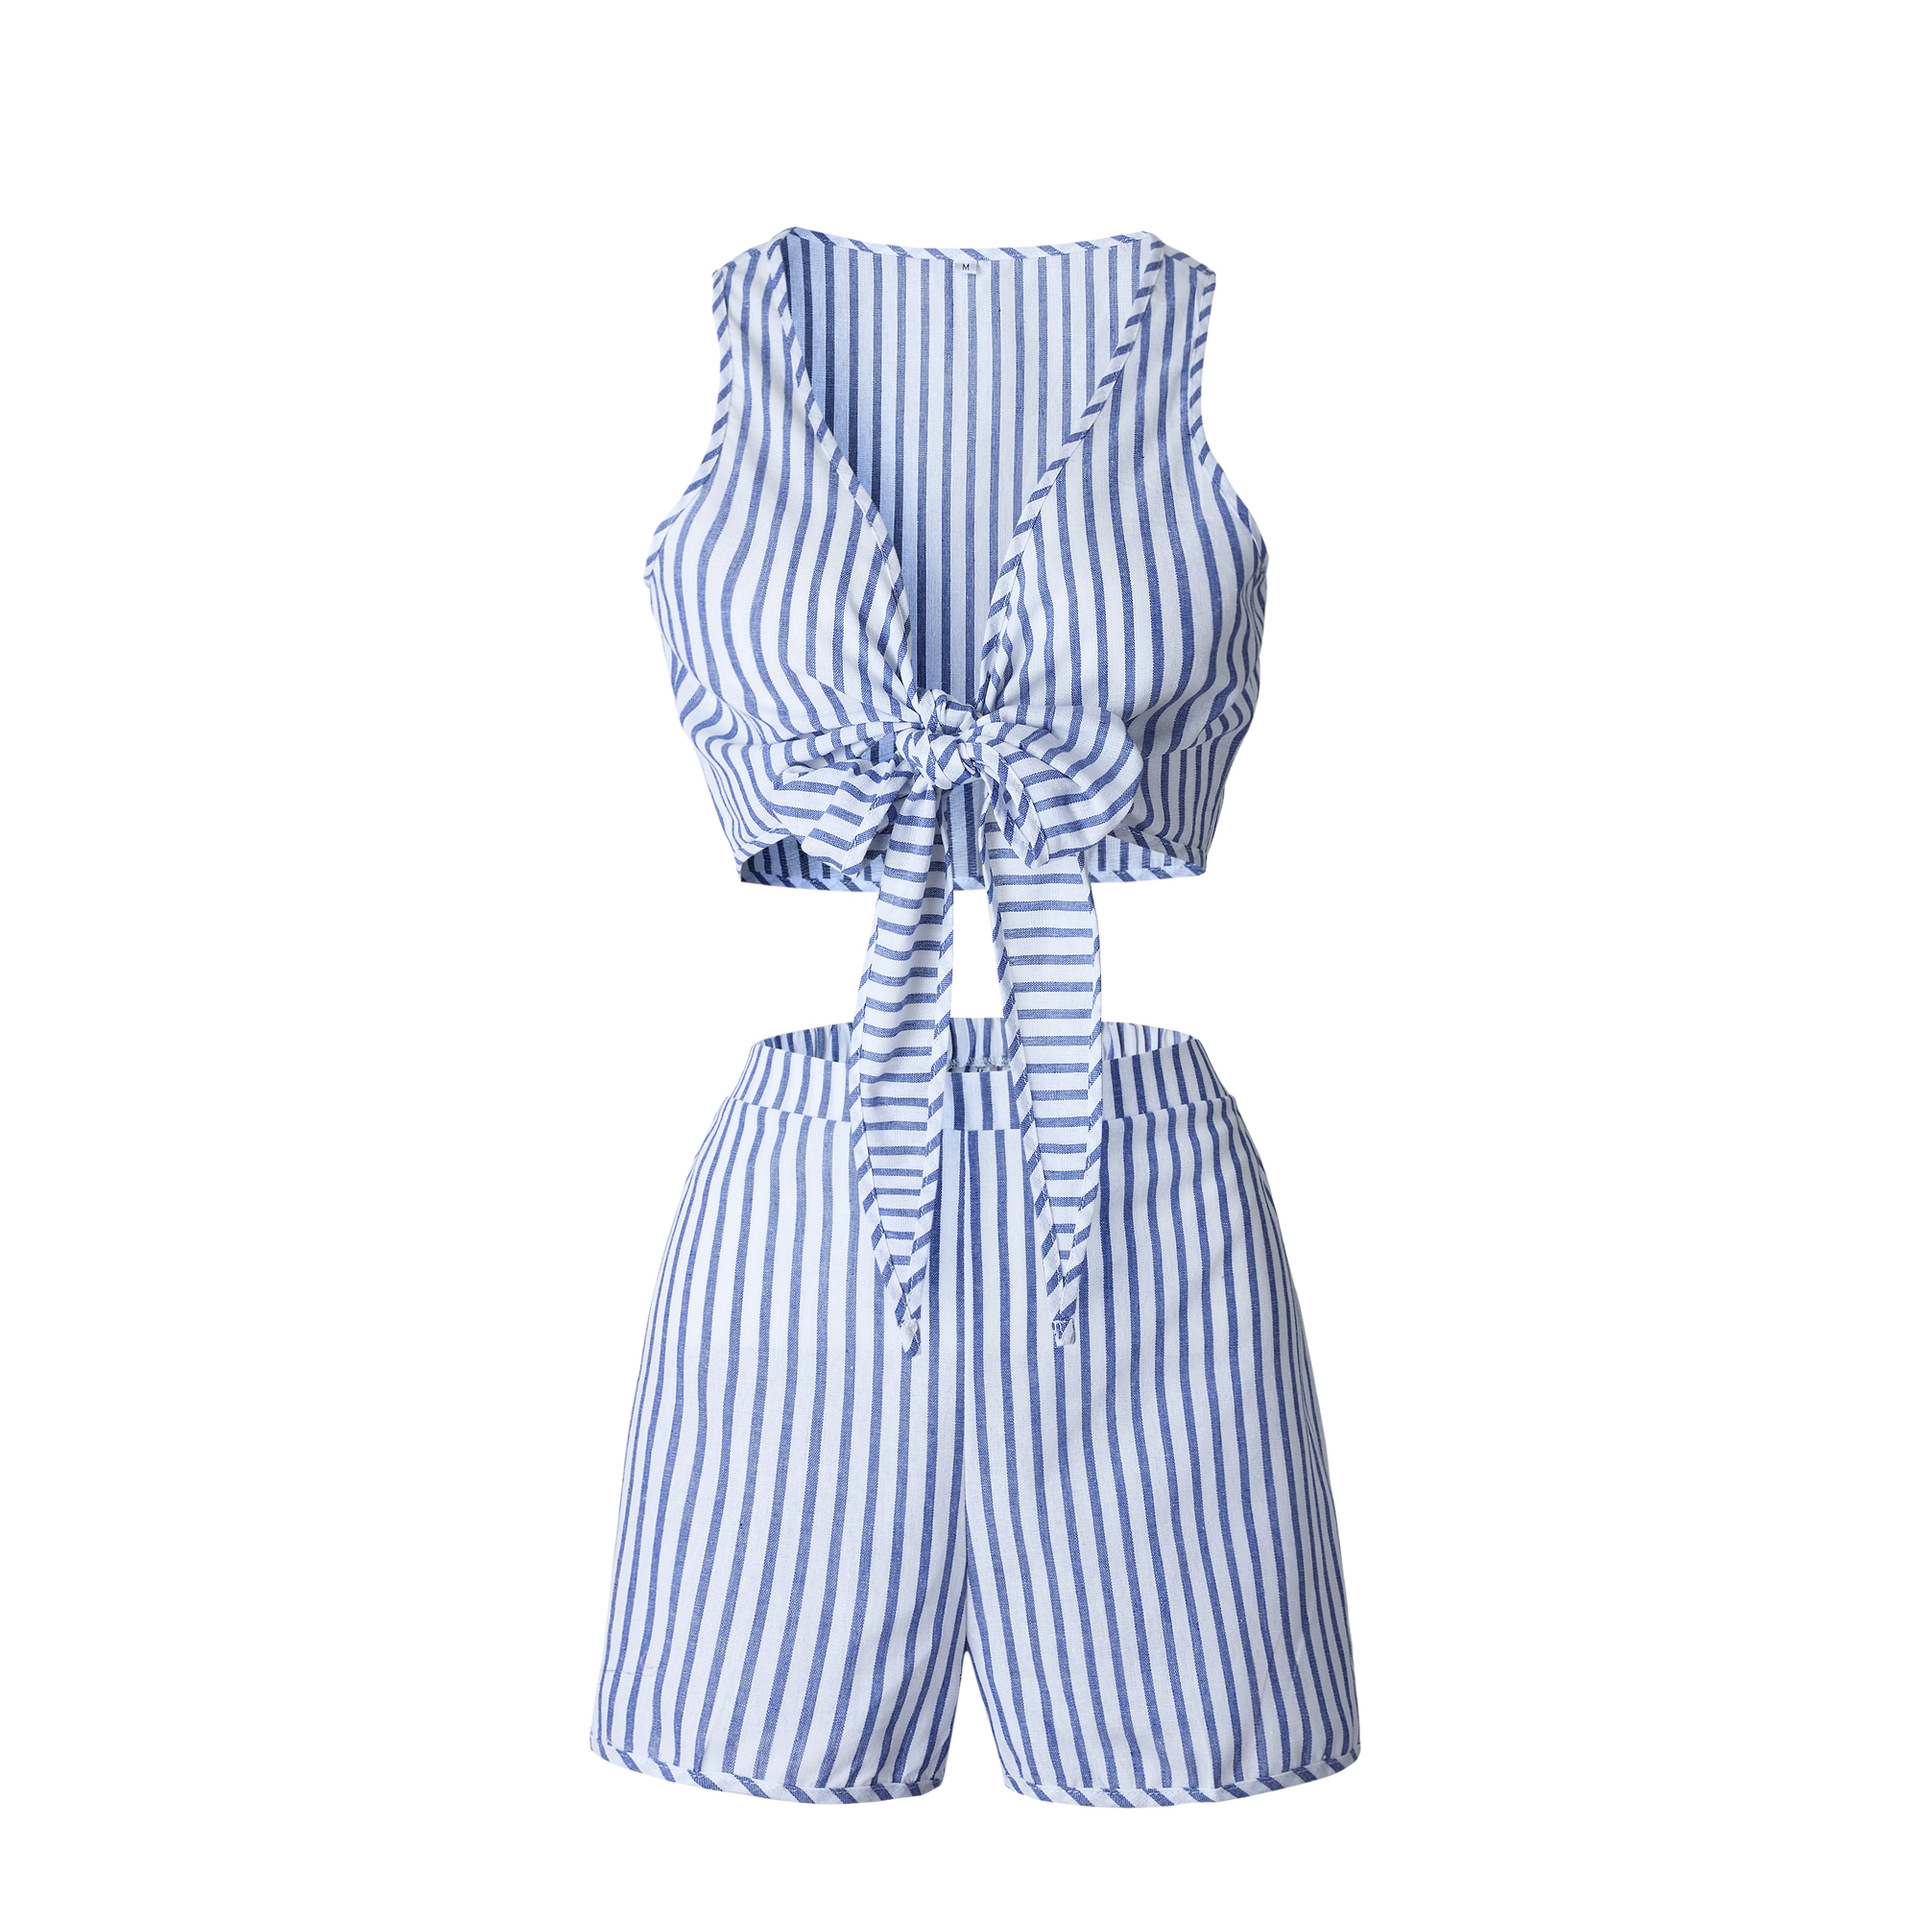 HTB1VGT6QVXXXXbCXXXXq6xXFXXXe - FREE SHIPPING Summer Sexy Blue Striped Women Suits Sleeveless Deep V Neck Lace Up Crop Top + Short Set Fashion Beach Two Piece Set JKP287